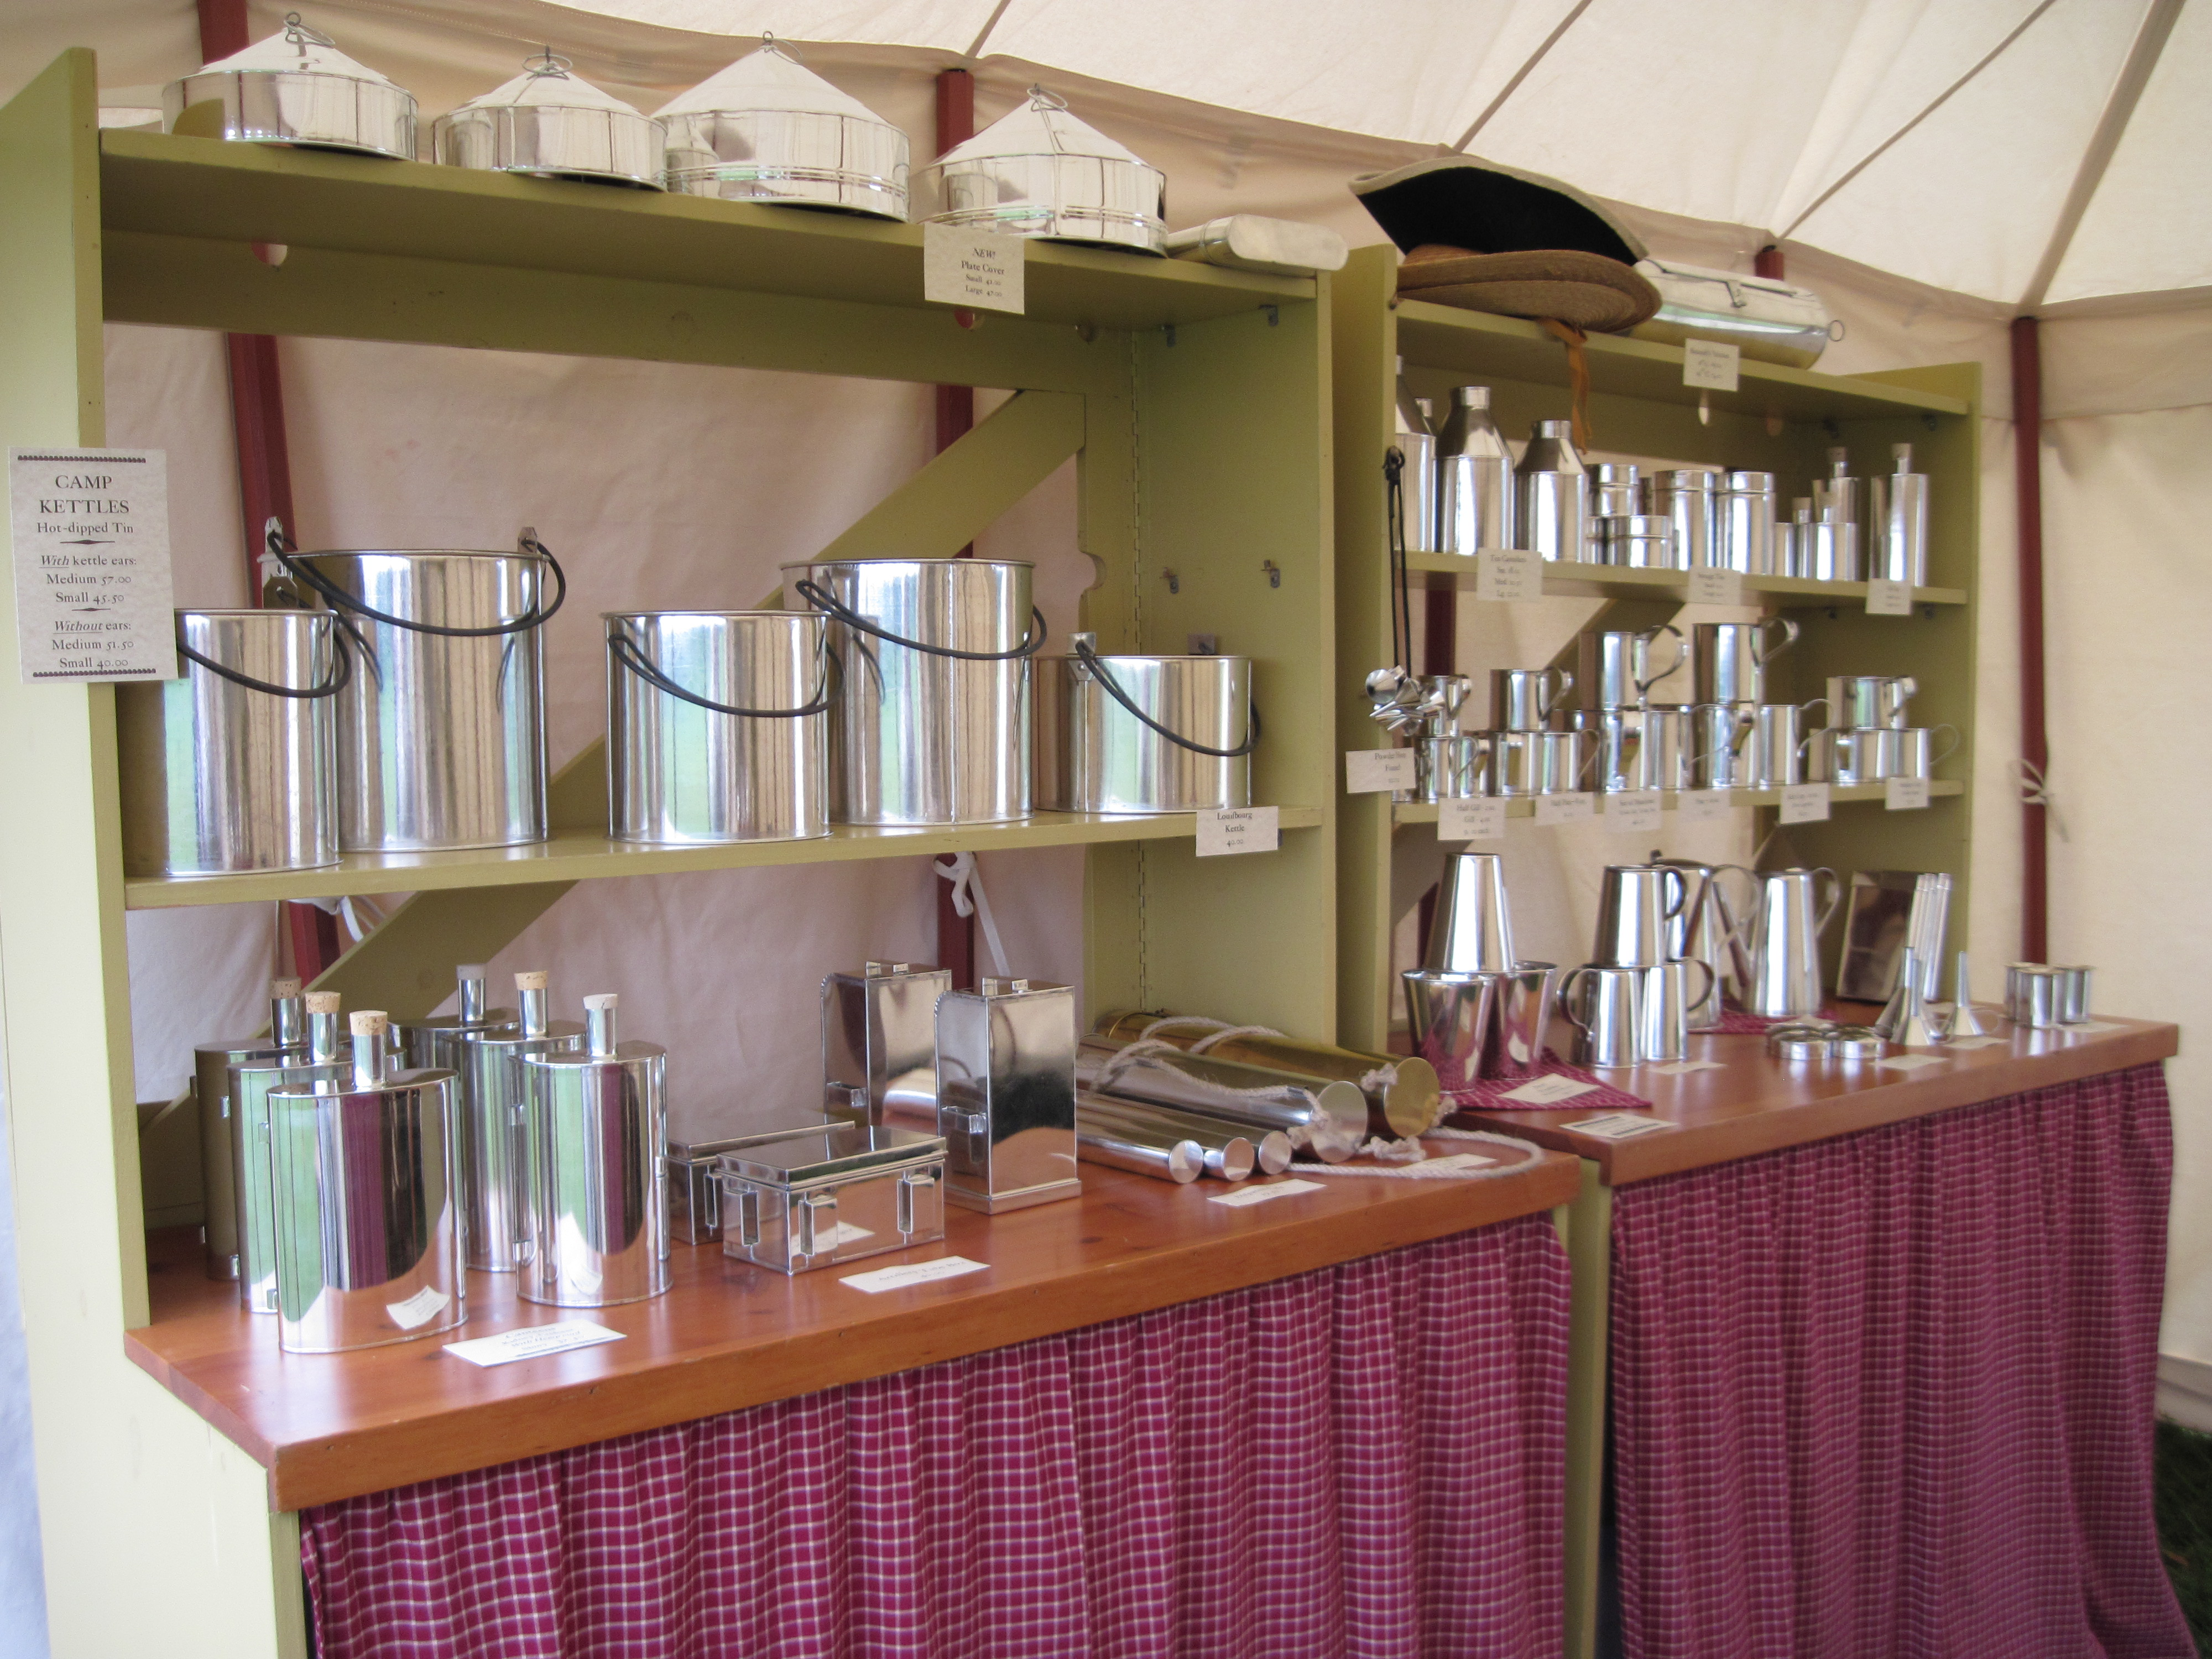 Tinware display - kitchen items